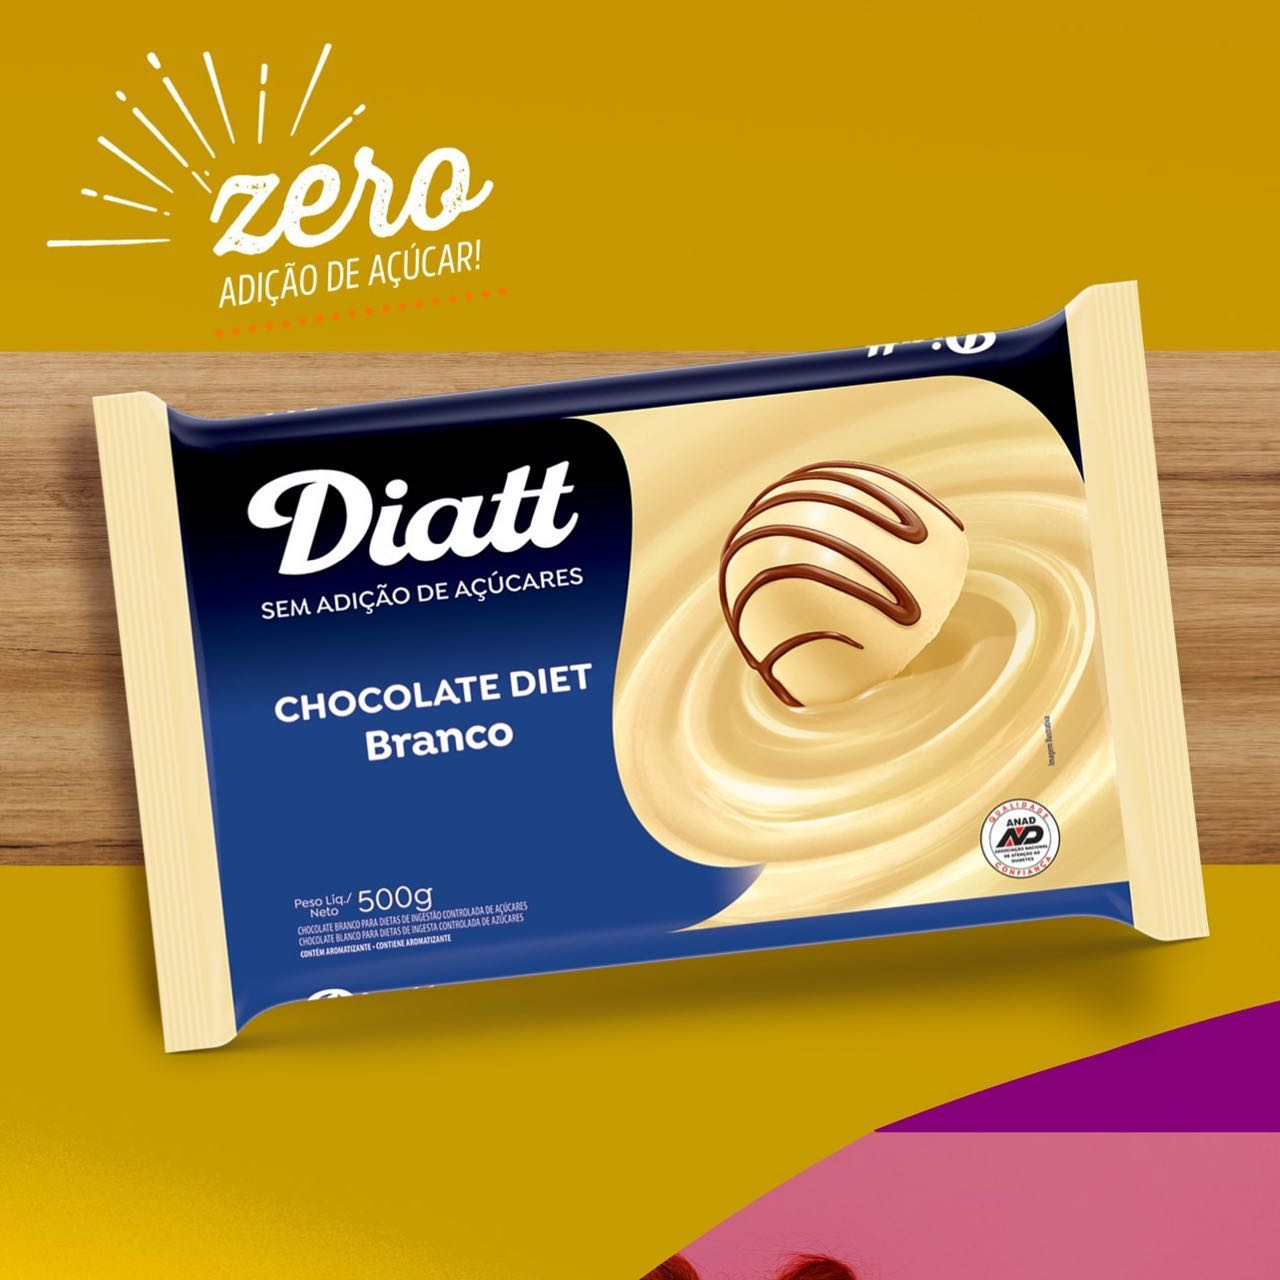 Chocolate Branco Diet Diatt